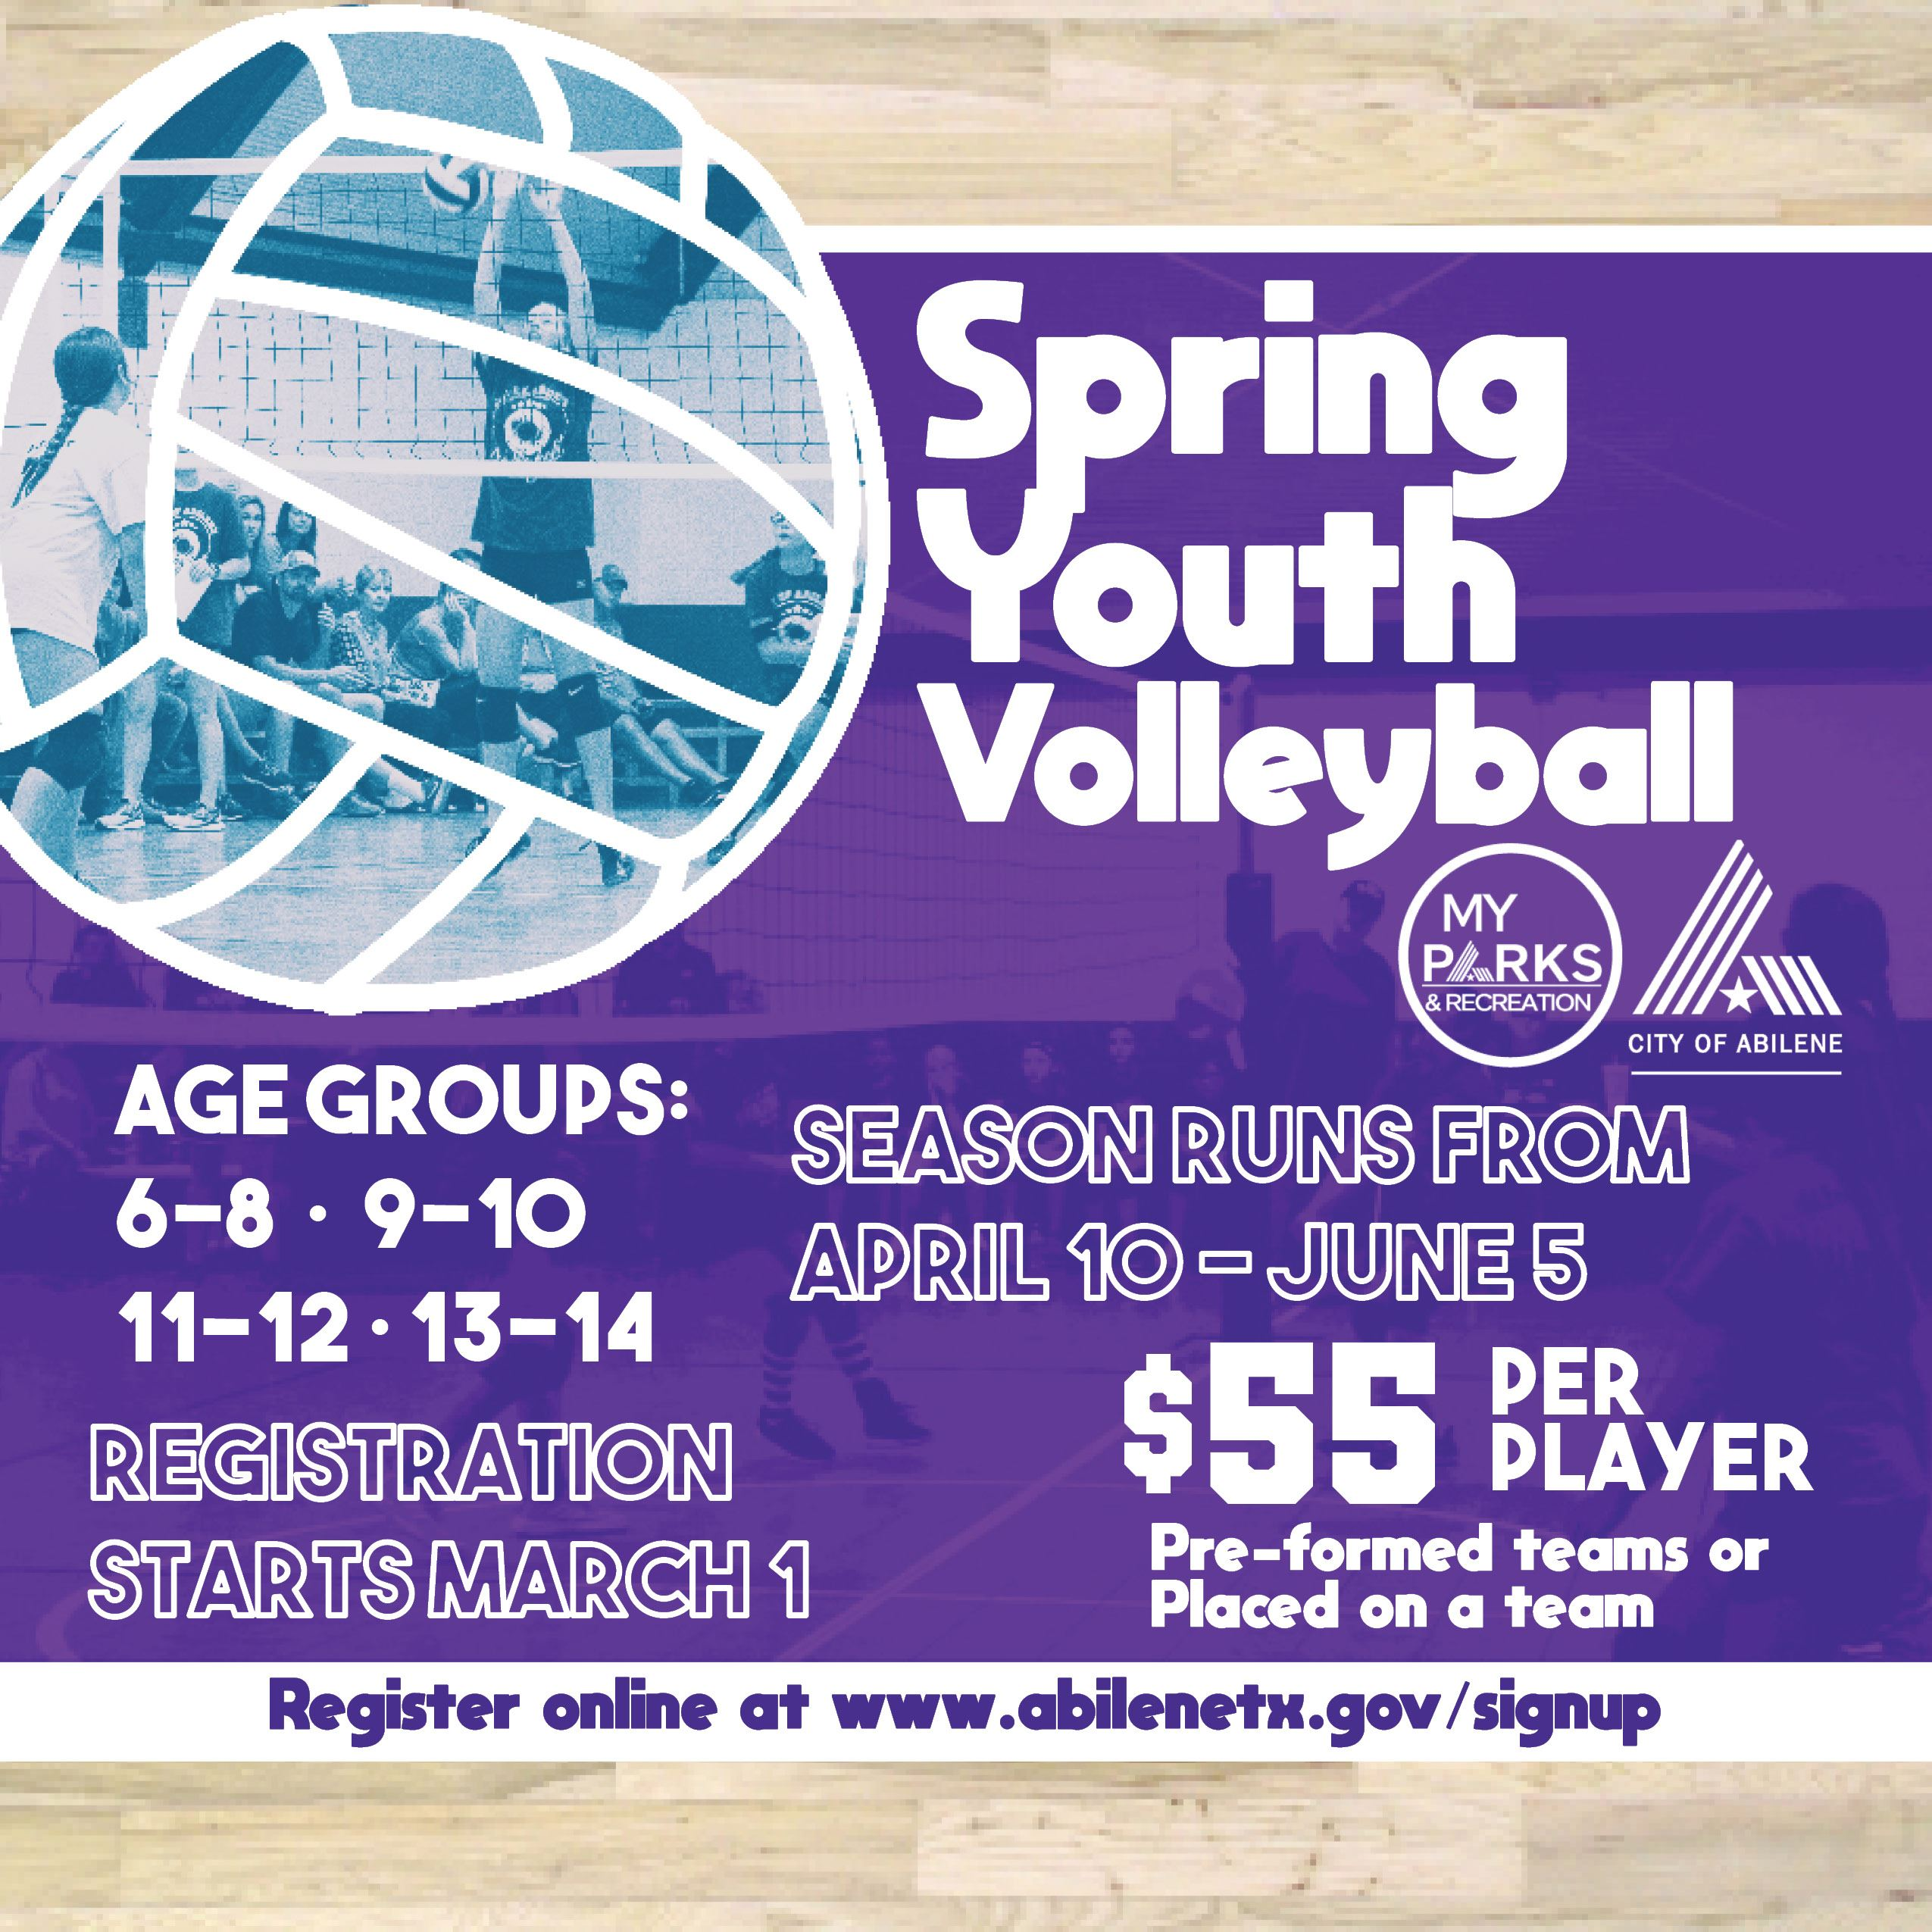 Spring Youth Volleyball 2021 SM